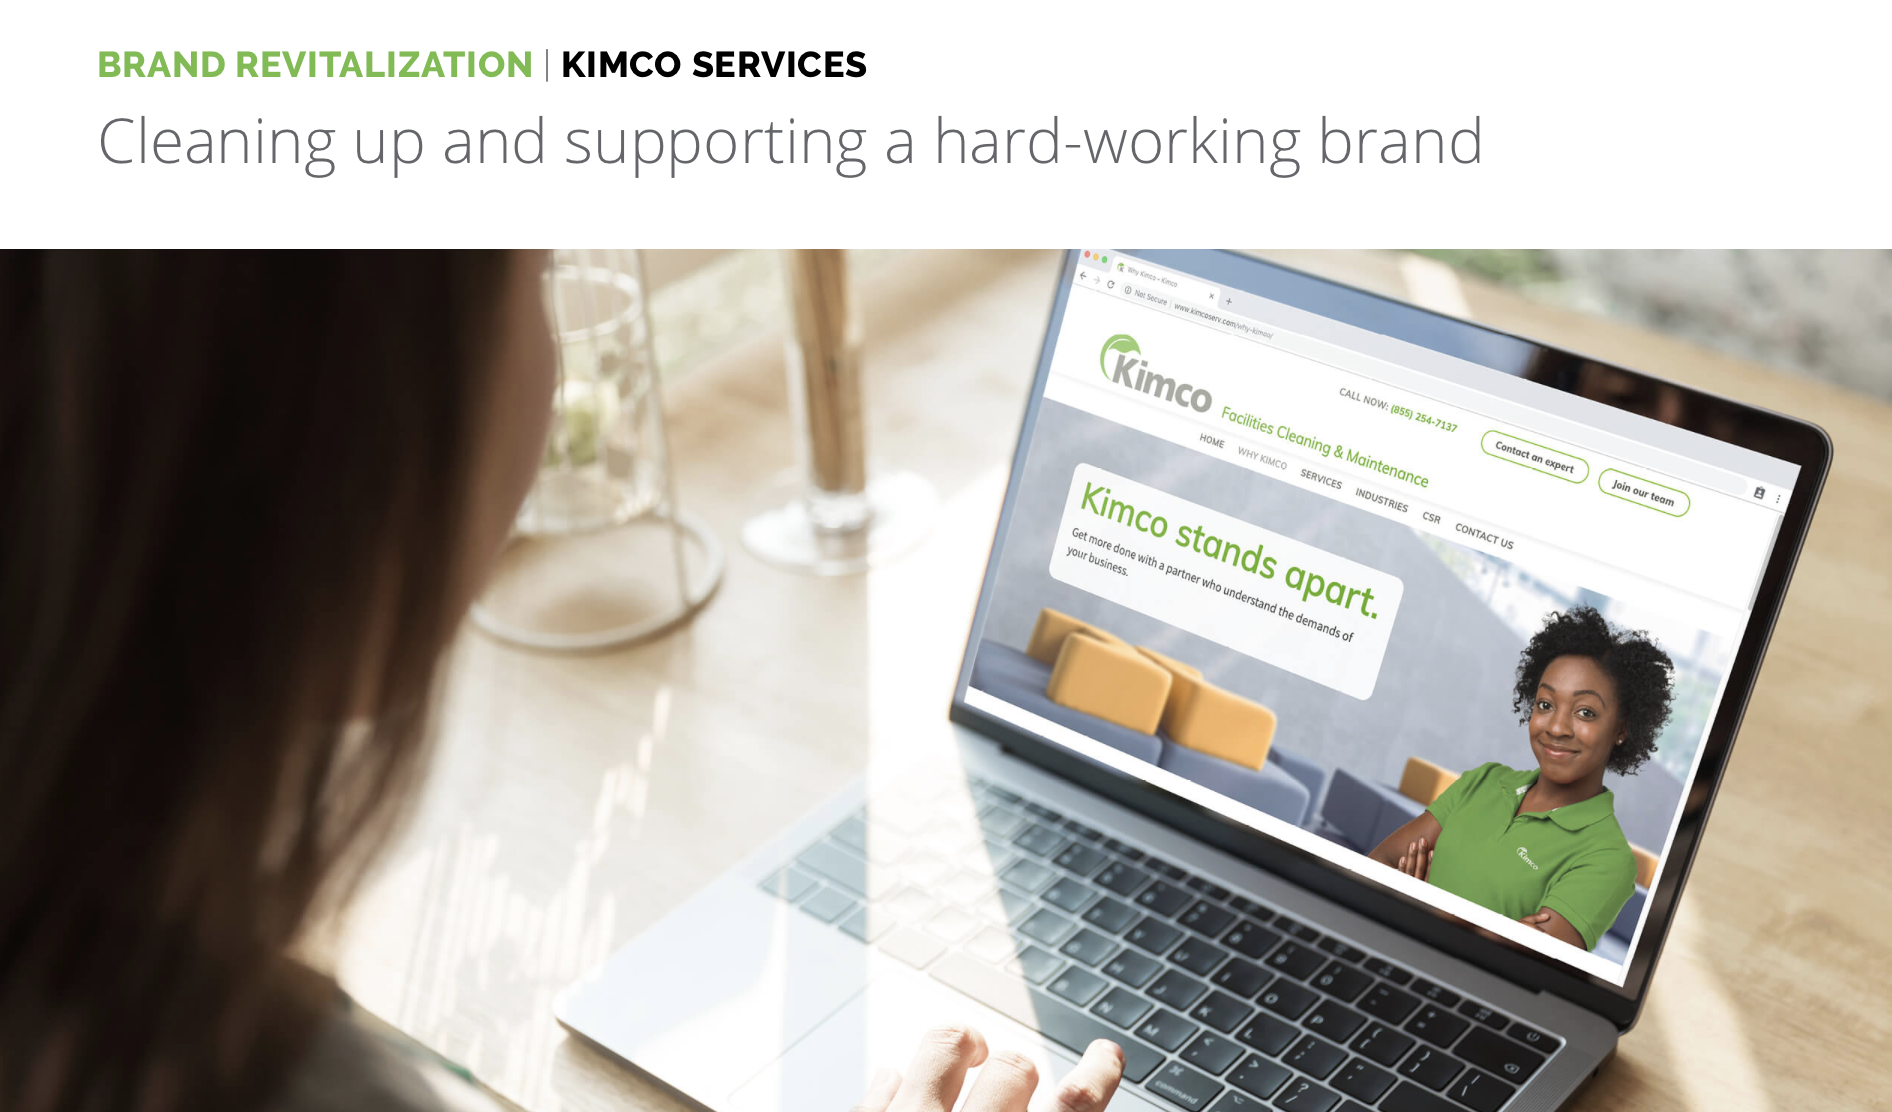 Click on the image to read the case study I wrote for Kimco